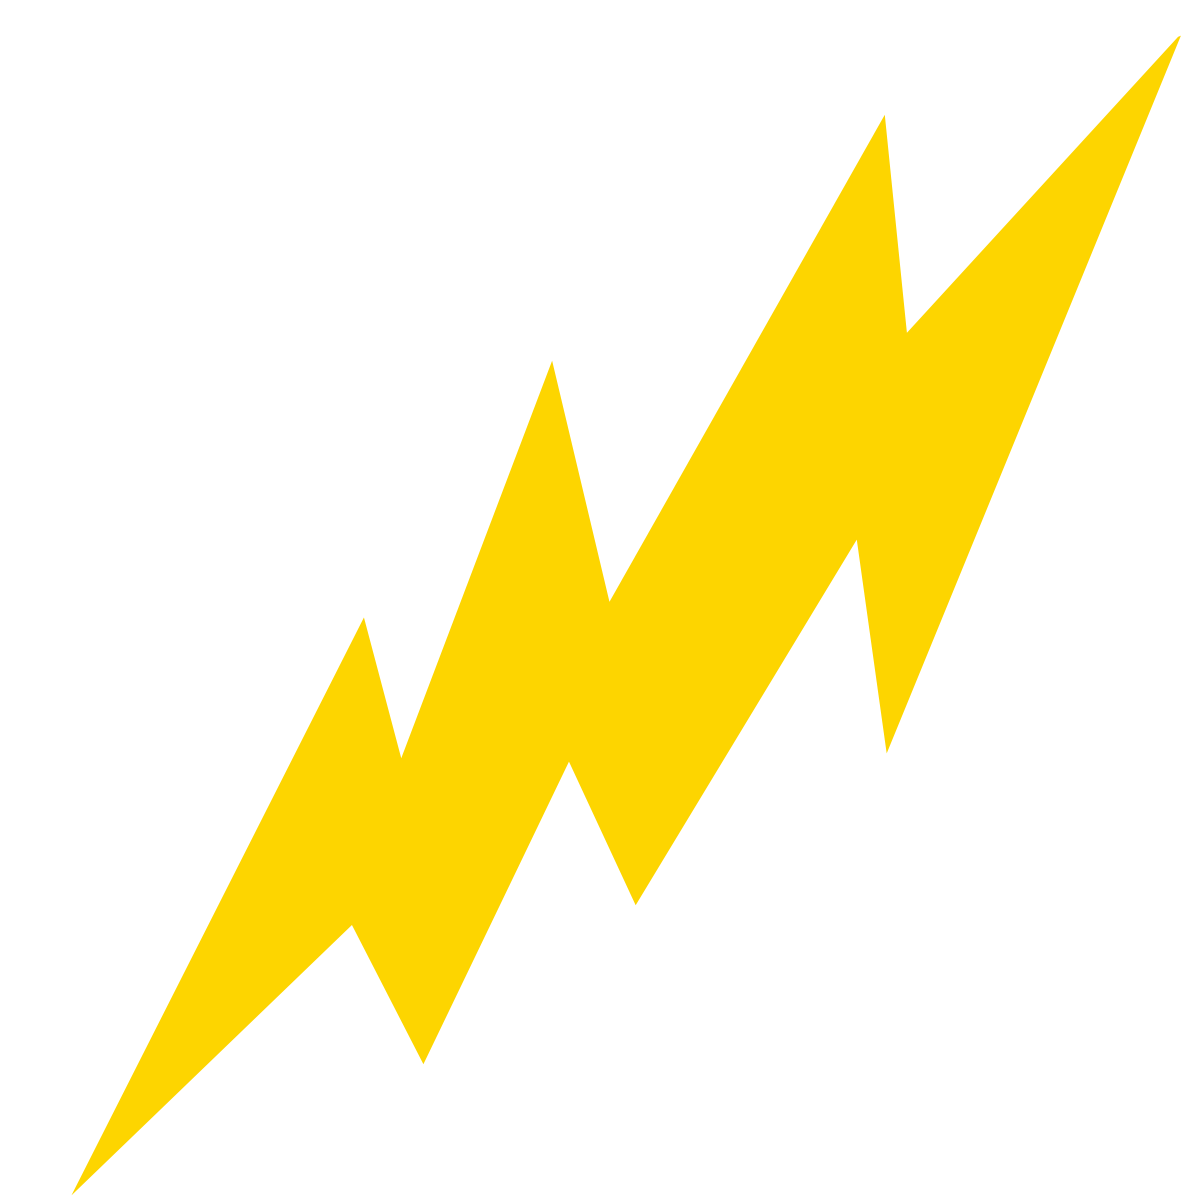 SG-BOLT-Yellow-SOLO copy.png